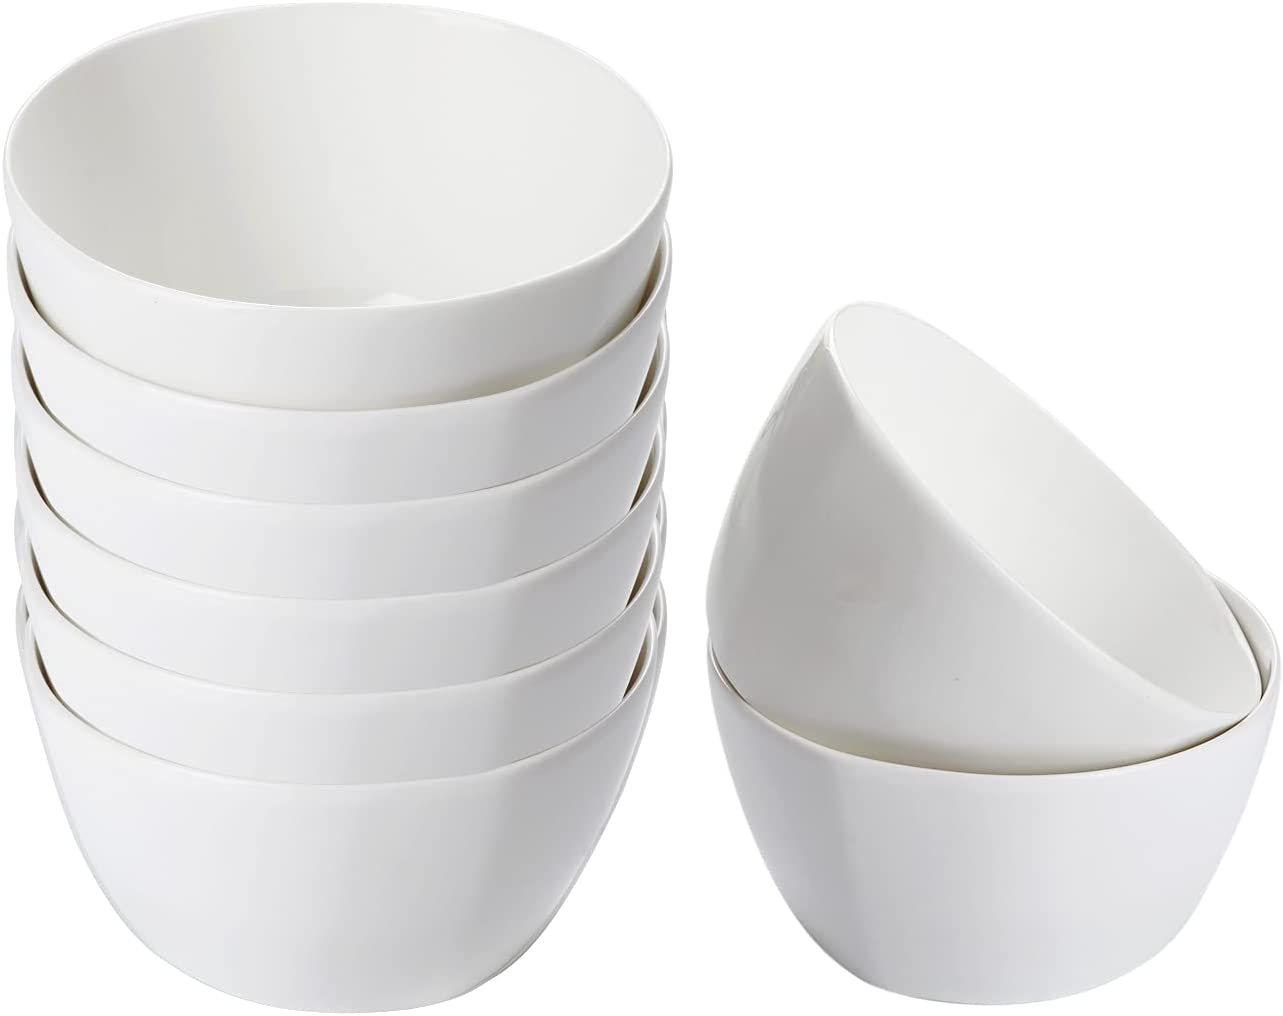 Accguan Ceramic Virginia Beach Mall Soup Bowls Surprise price Cereal 12 Set Ounce Bowl Chi